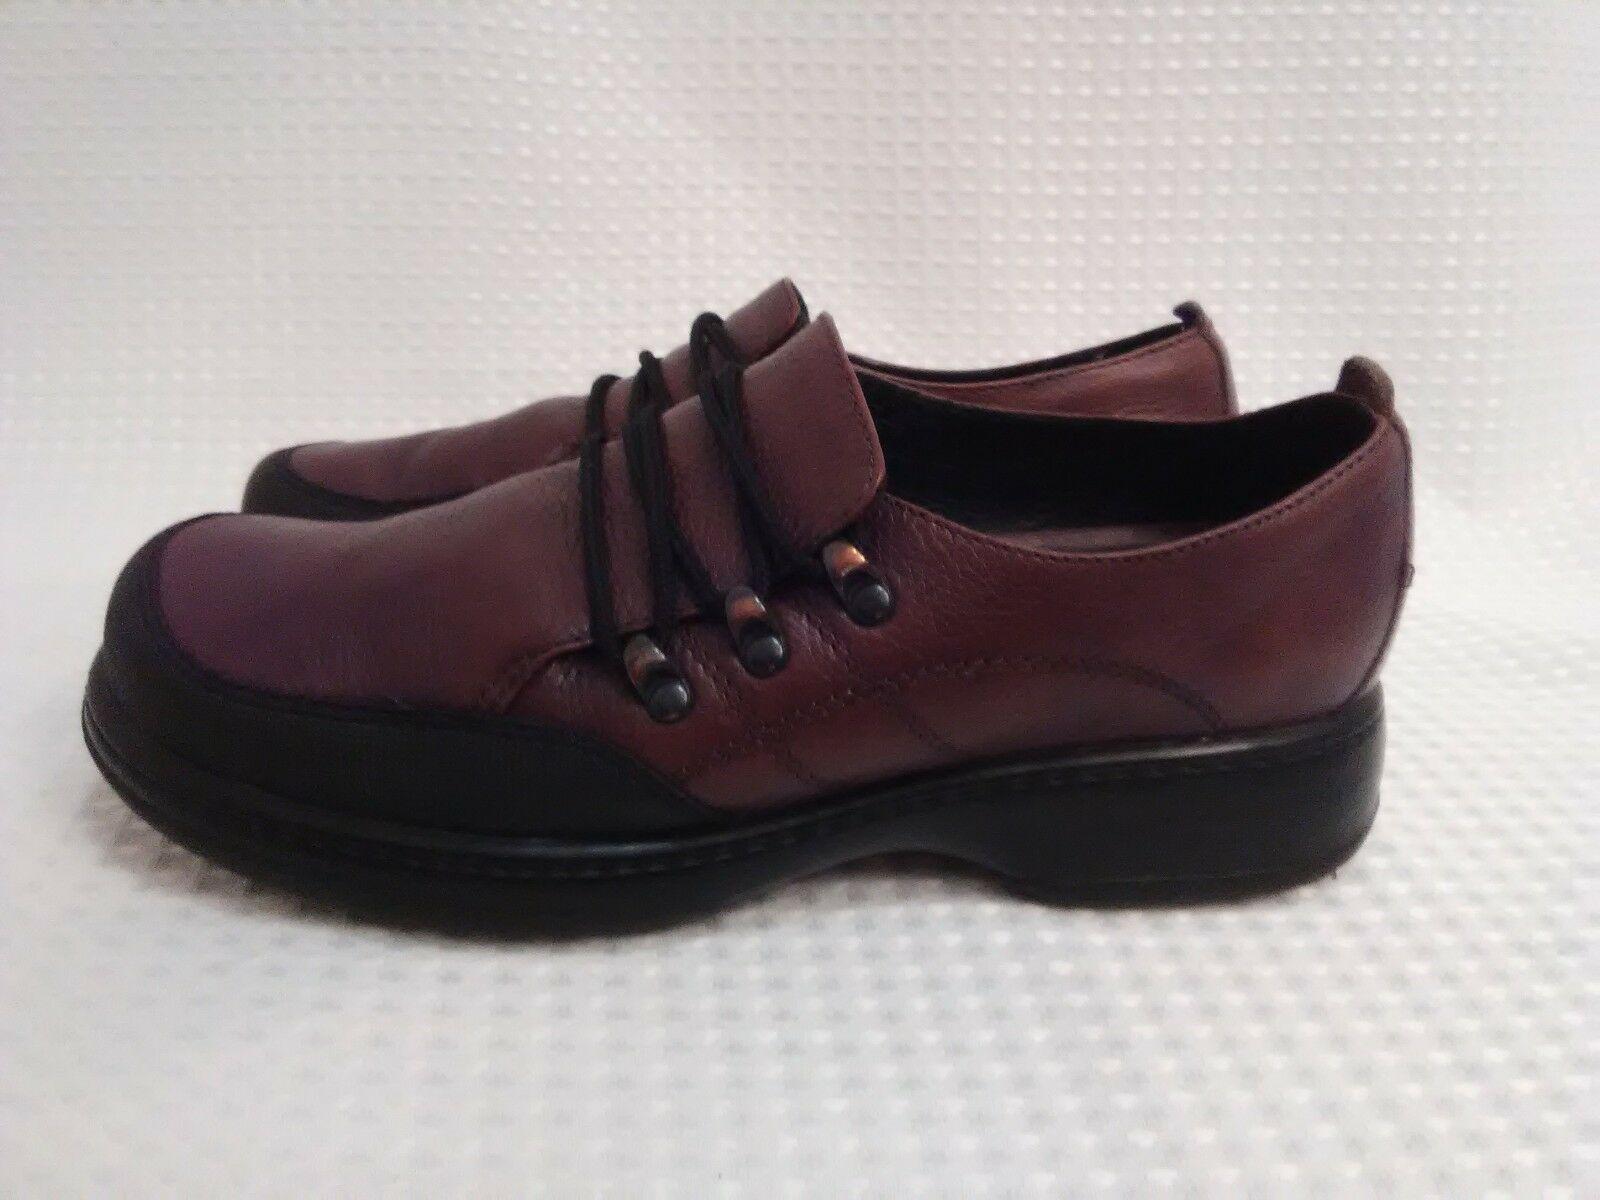 Dansko 40 Janika Brown Black Leather Oxfords shoes Made In Mgoldcco Womens 9.5-10